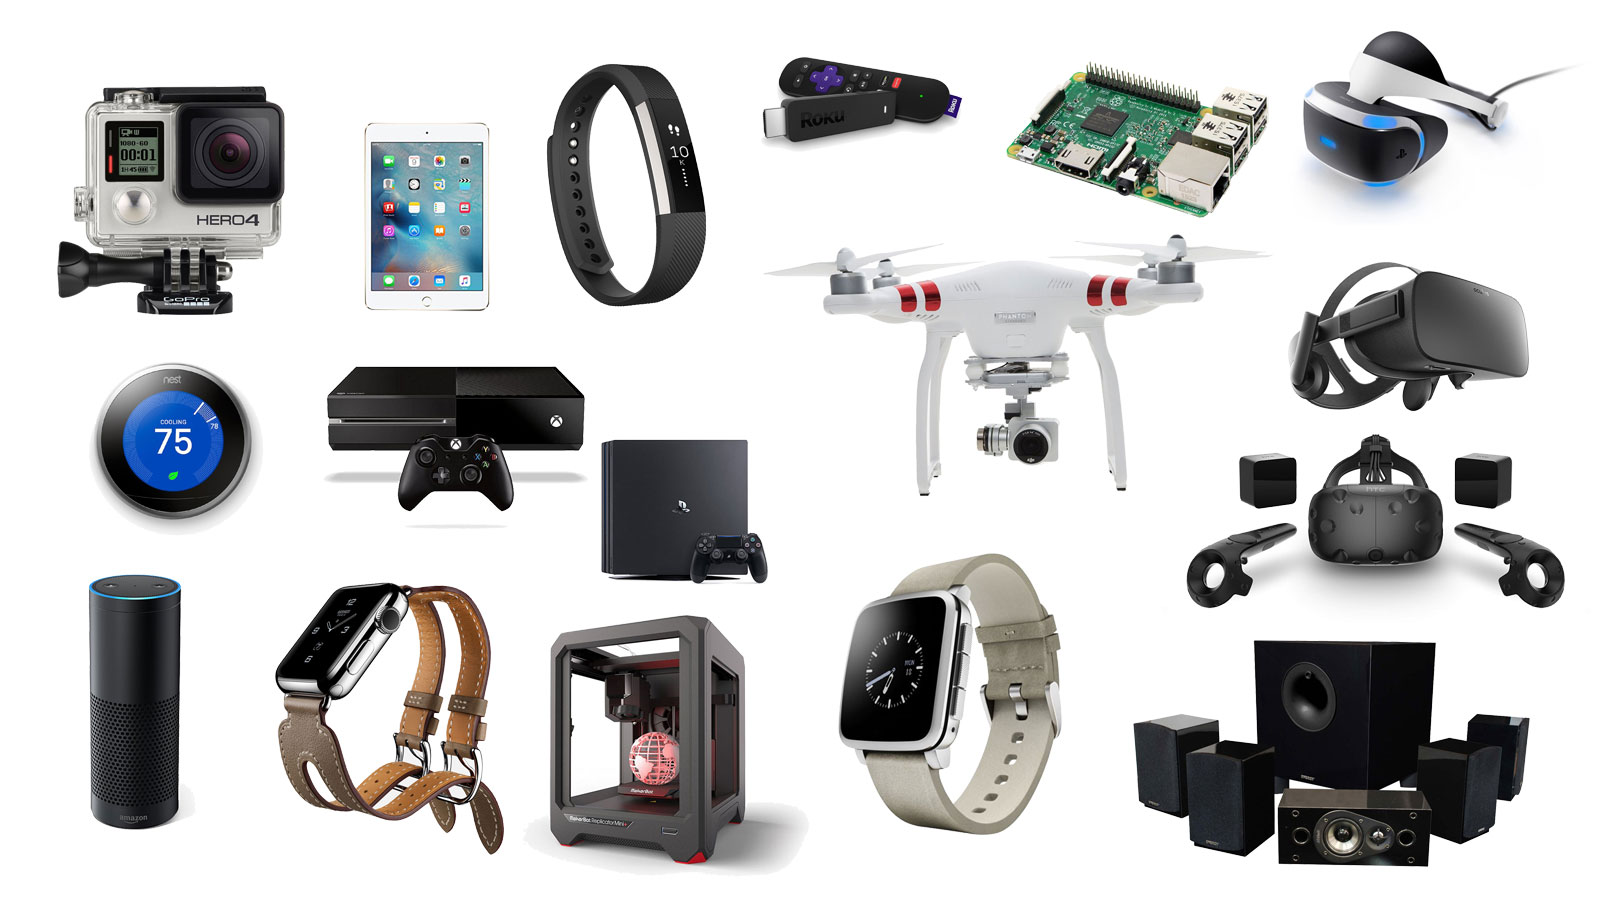 Gifts for men the best gifts for techies muted for The best gift for men